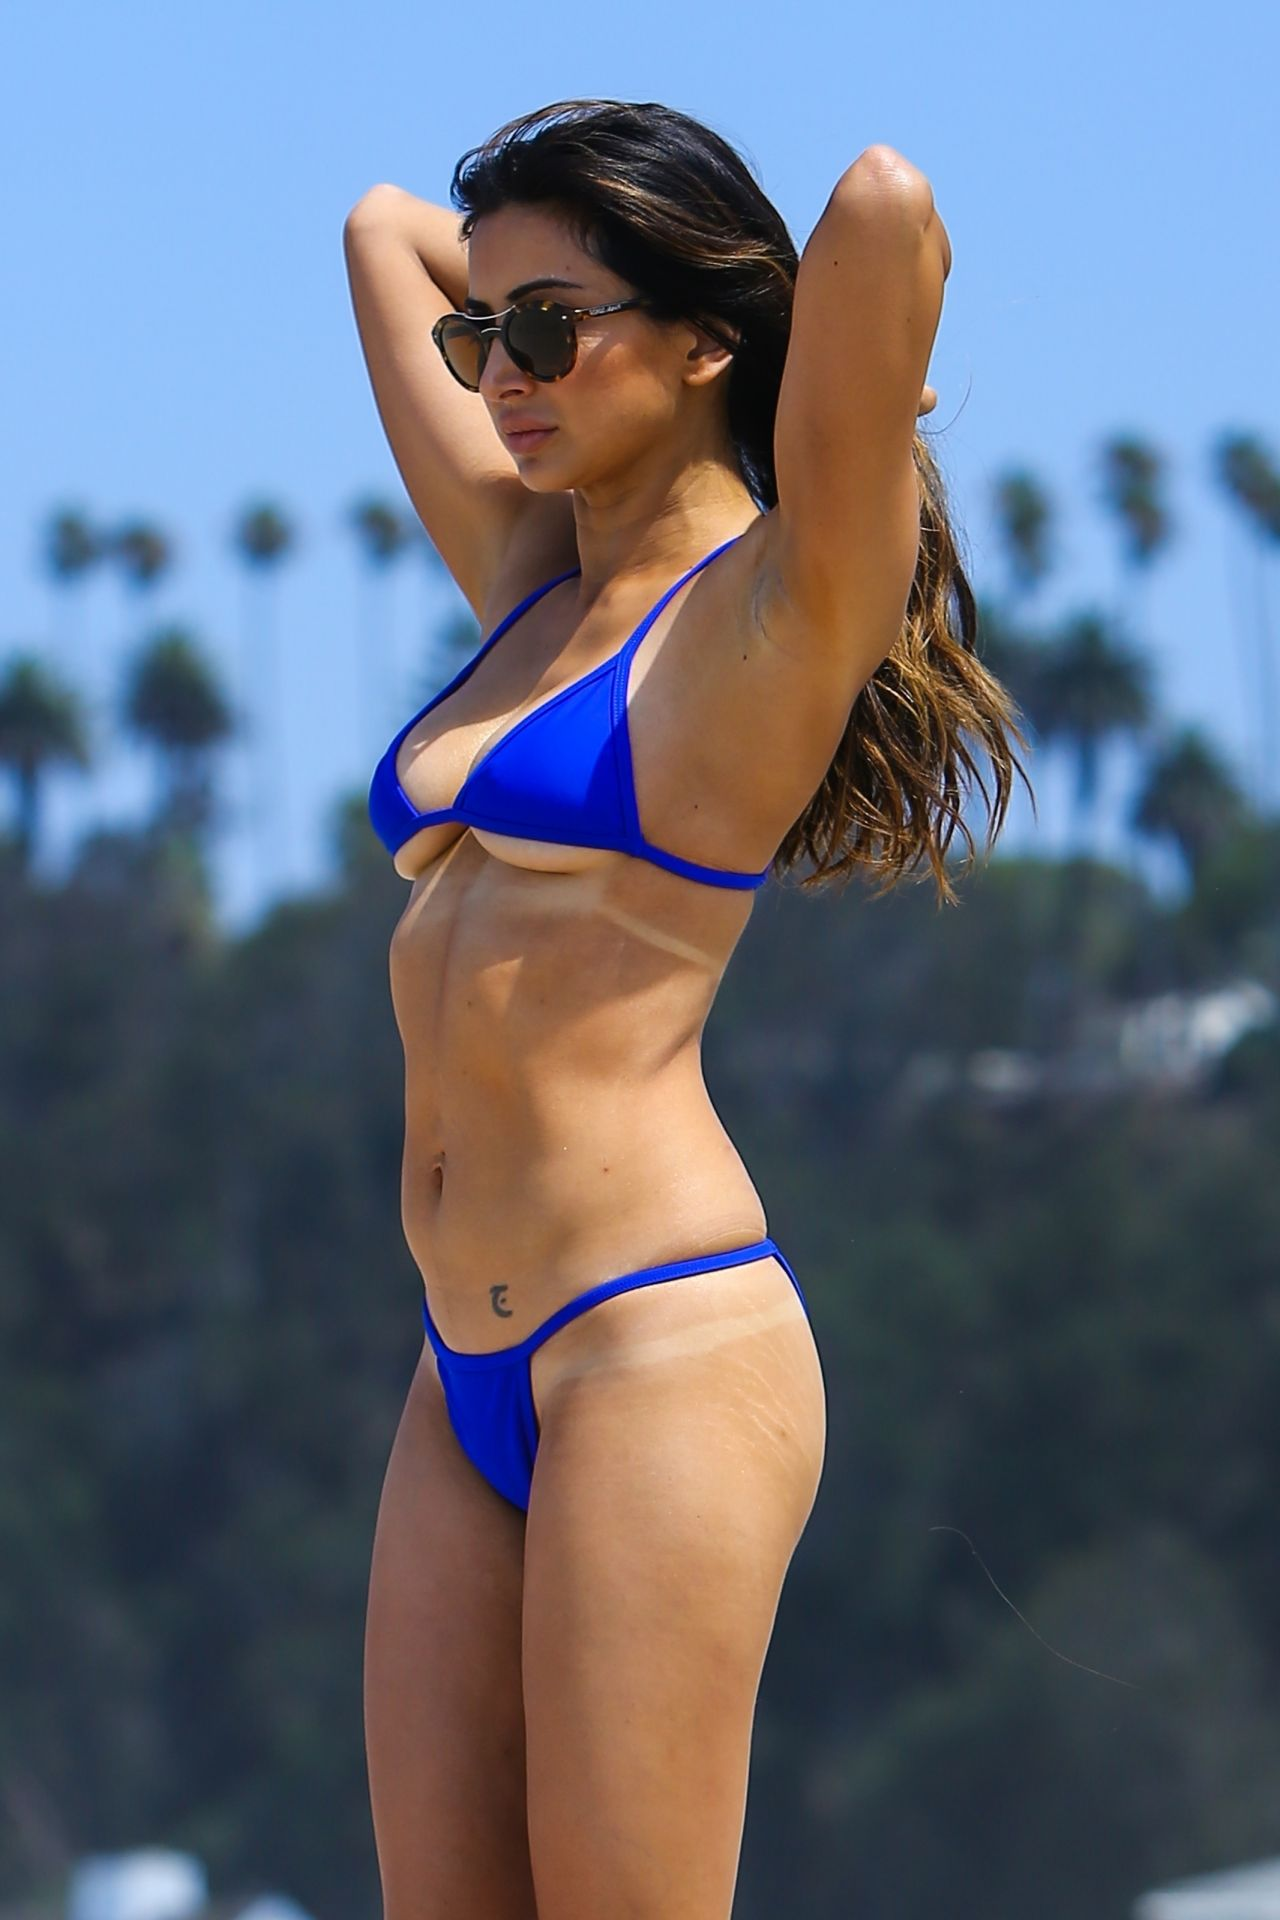 Noureen Dewulf In A Blue Bikini At The Beach In Santa -2333